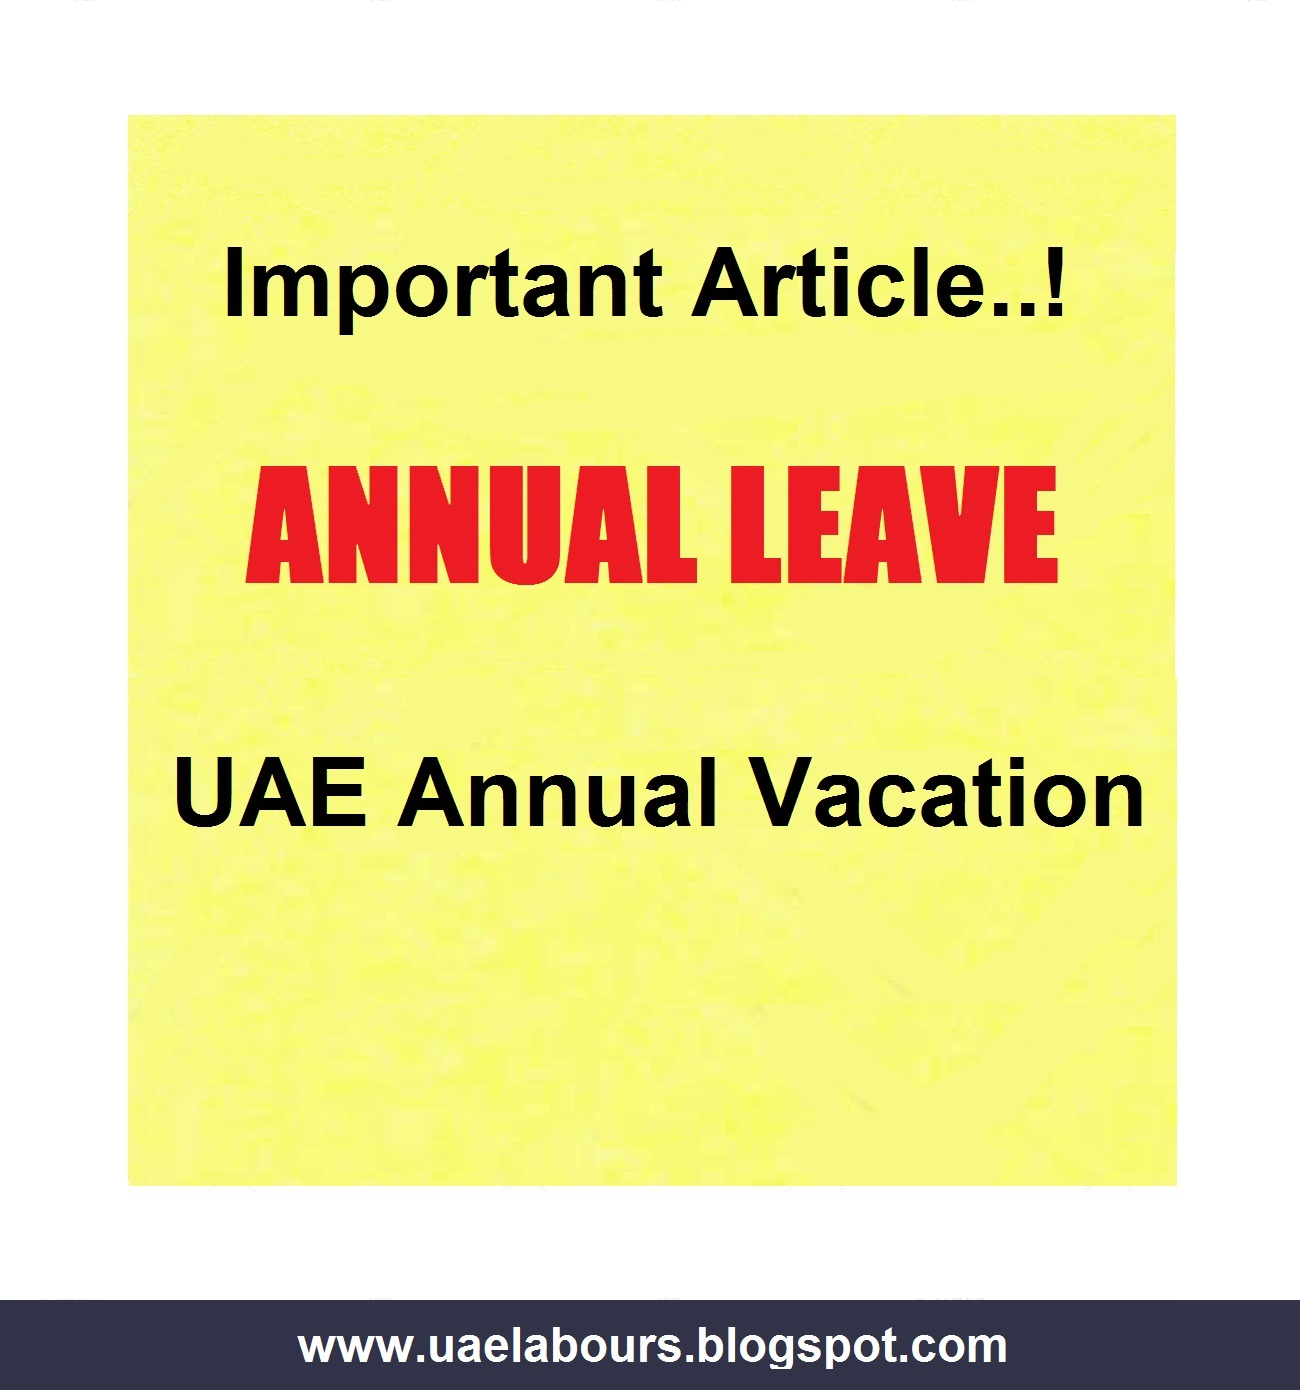 Uae annual leave and vacation labour law uae labours uae annual leave law 2016 uae annual leave salary law annual vacation dubai spiritdancerdesigns Gallery